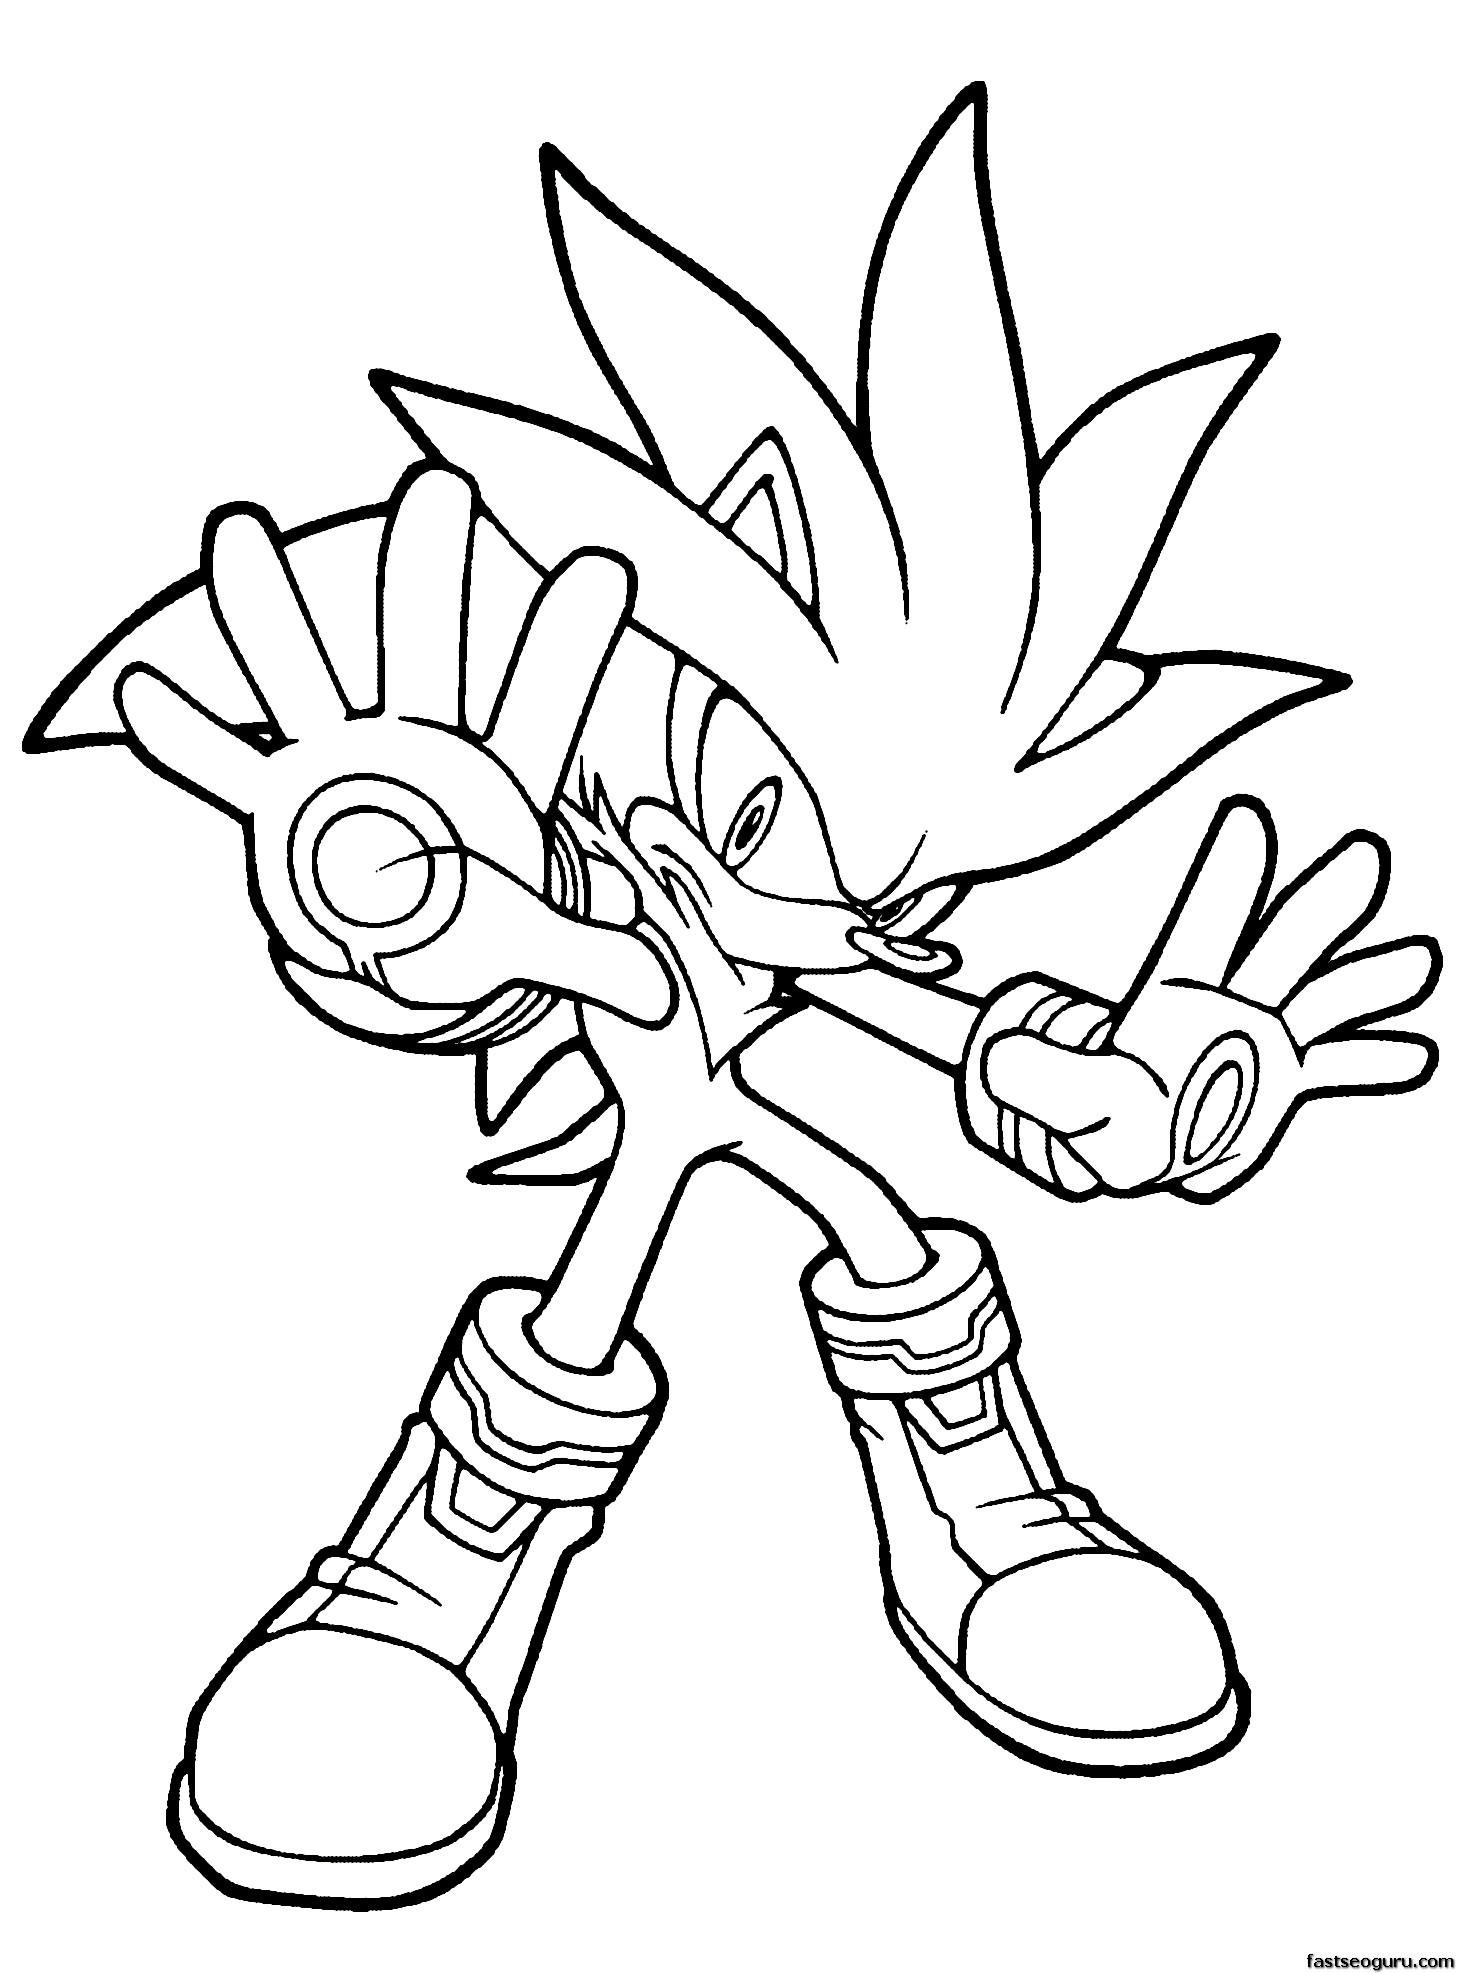 The Best Free Werehog Coloring Page Images Download From 9 Free Coloring Pages Of Werehog At Getdrawings